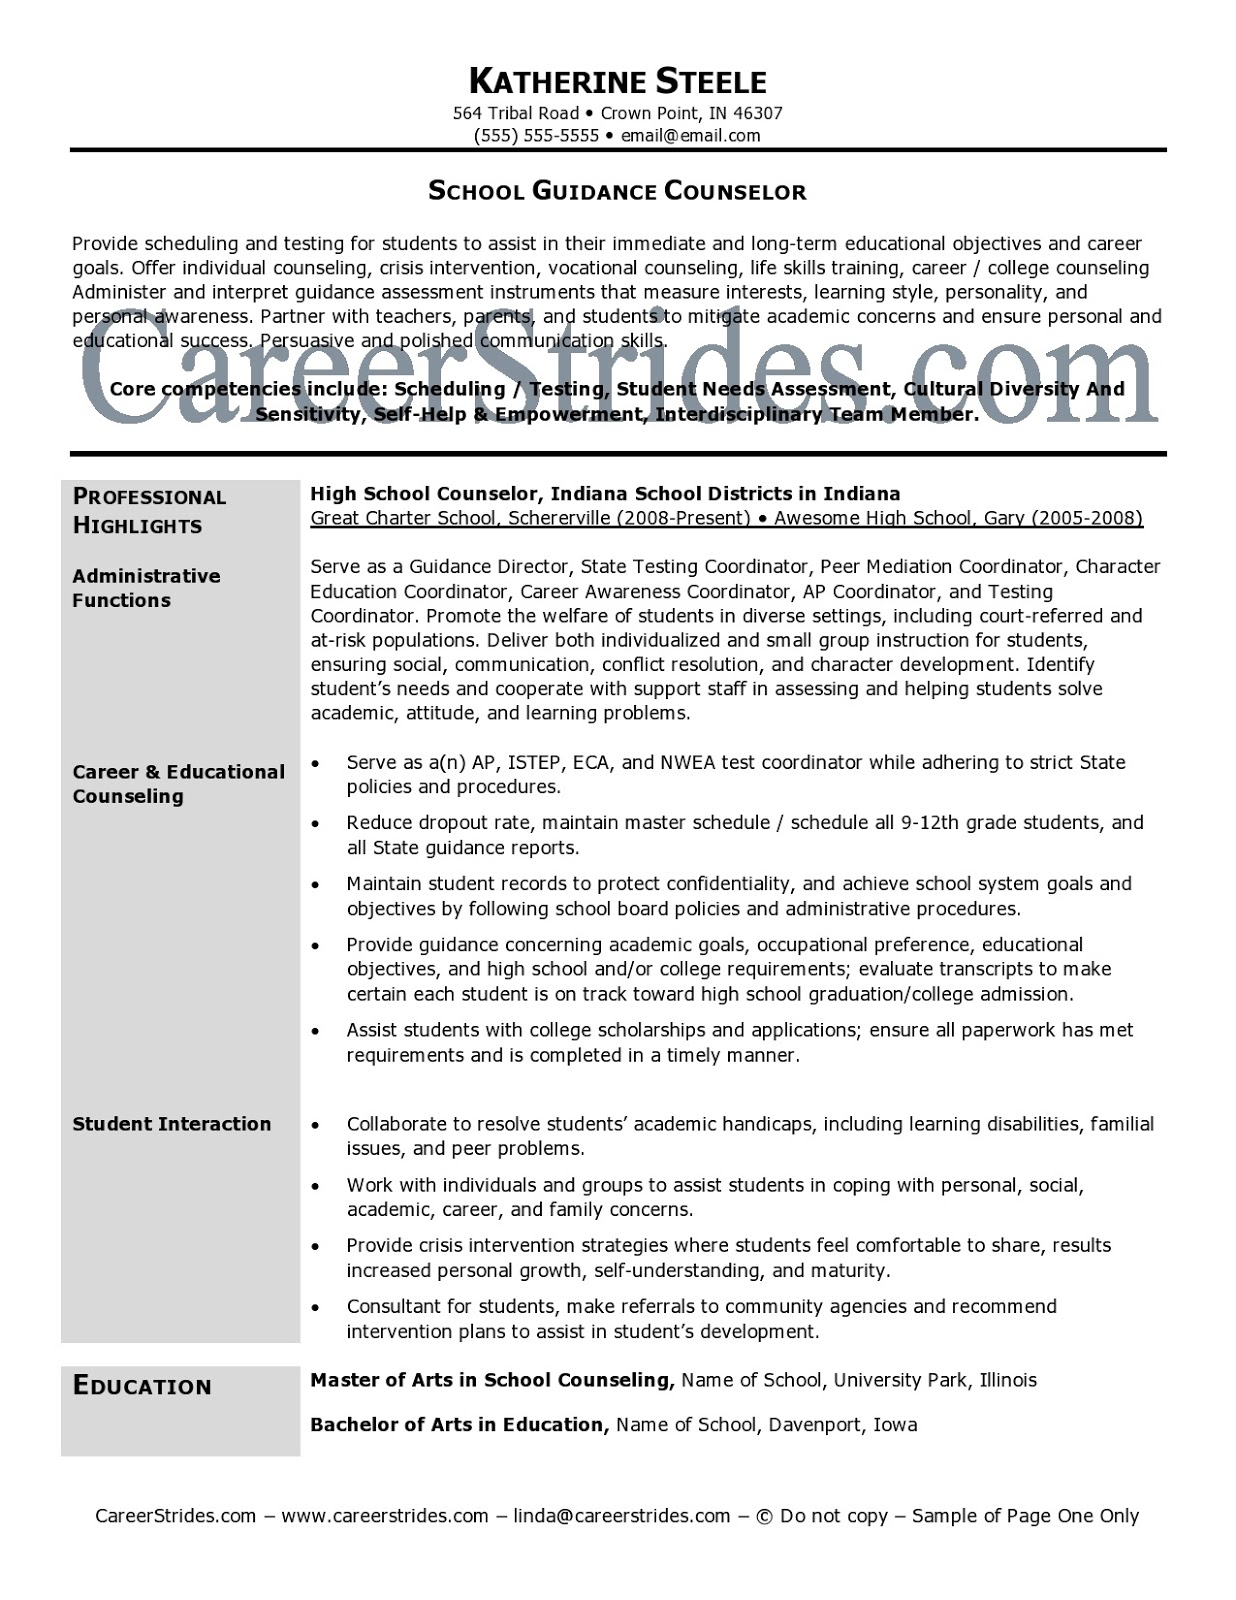 school counselor resume sample, school counselor resume sample, school counselor cv samples, guidance counselor resume samples, school counseling resume sample, guidance counselor resume sample, school counselor resume objective sample, after school counselor resume sample, school counselor internship resume sample, elementary school counselor resume sample